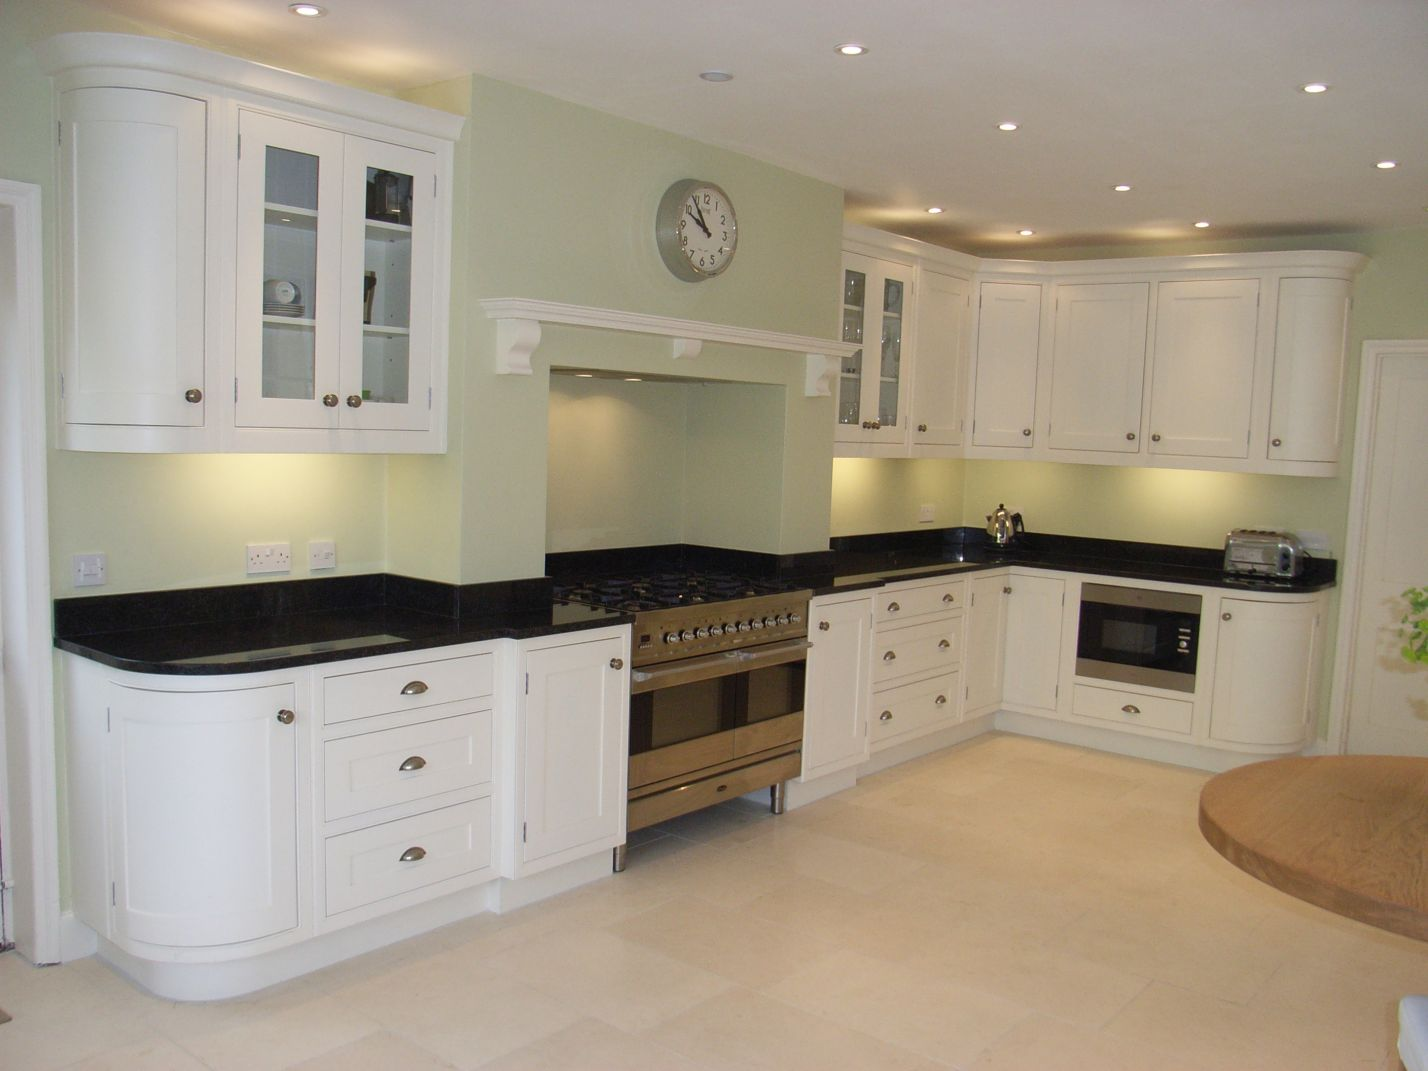 classic kitchen units are seen here, but there are many other choices.